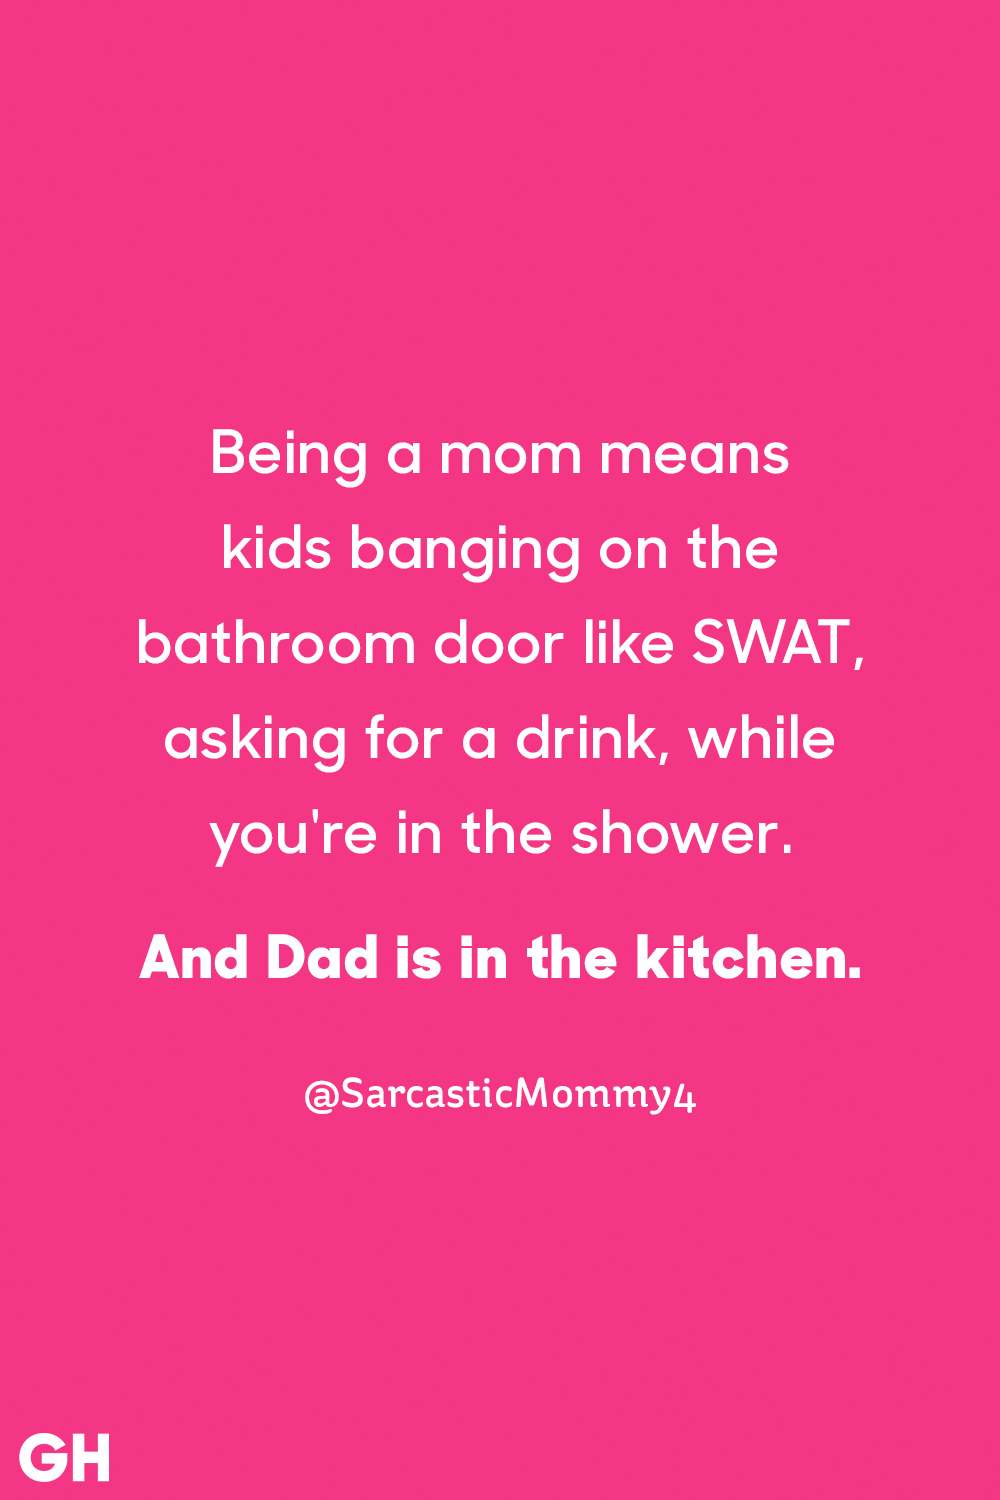 Humorous comparison, the difference between moms upbringing and dads